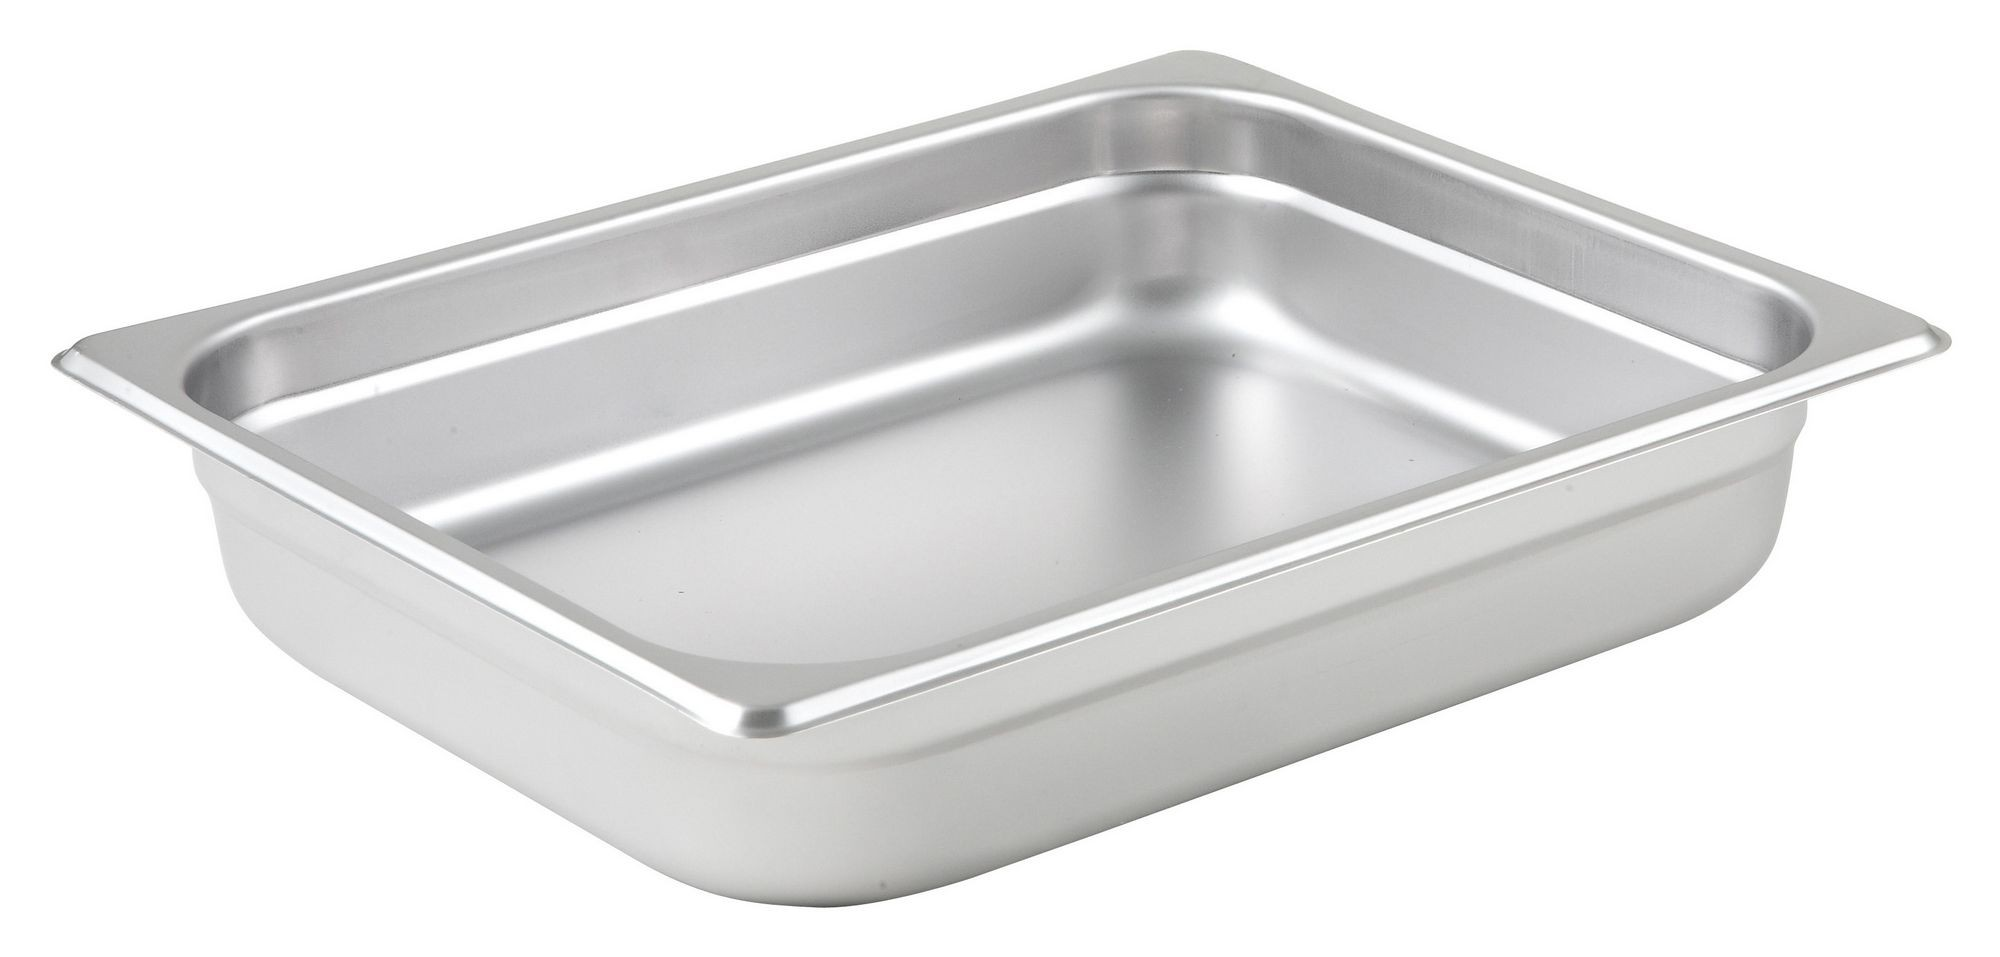 Winco Half Size Anti-Jamming Steam Table Pan (23 Gauge, 2.5